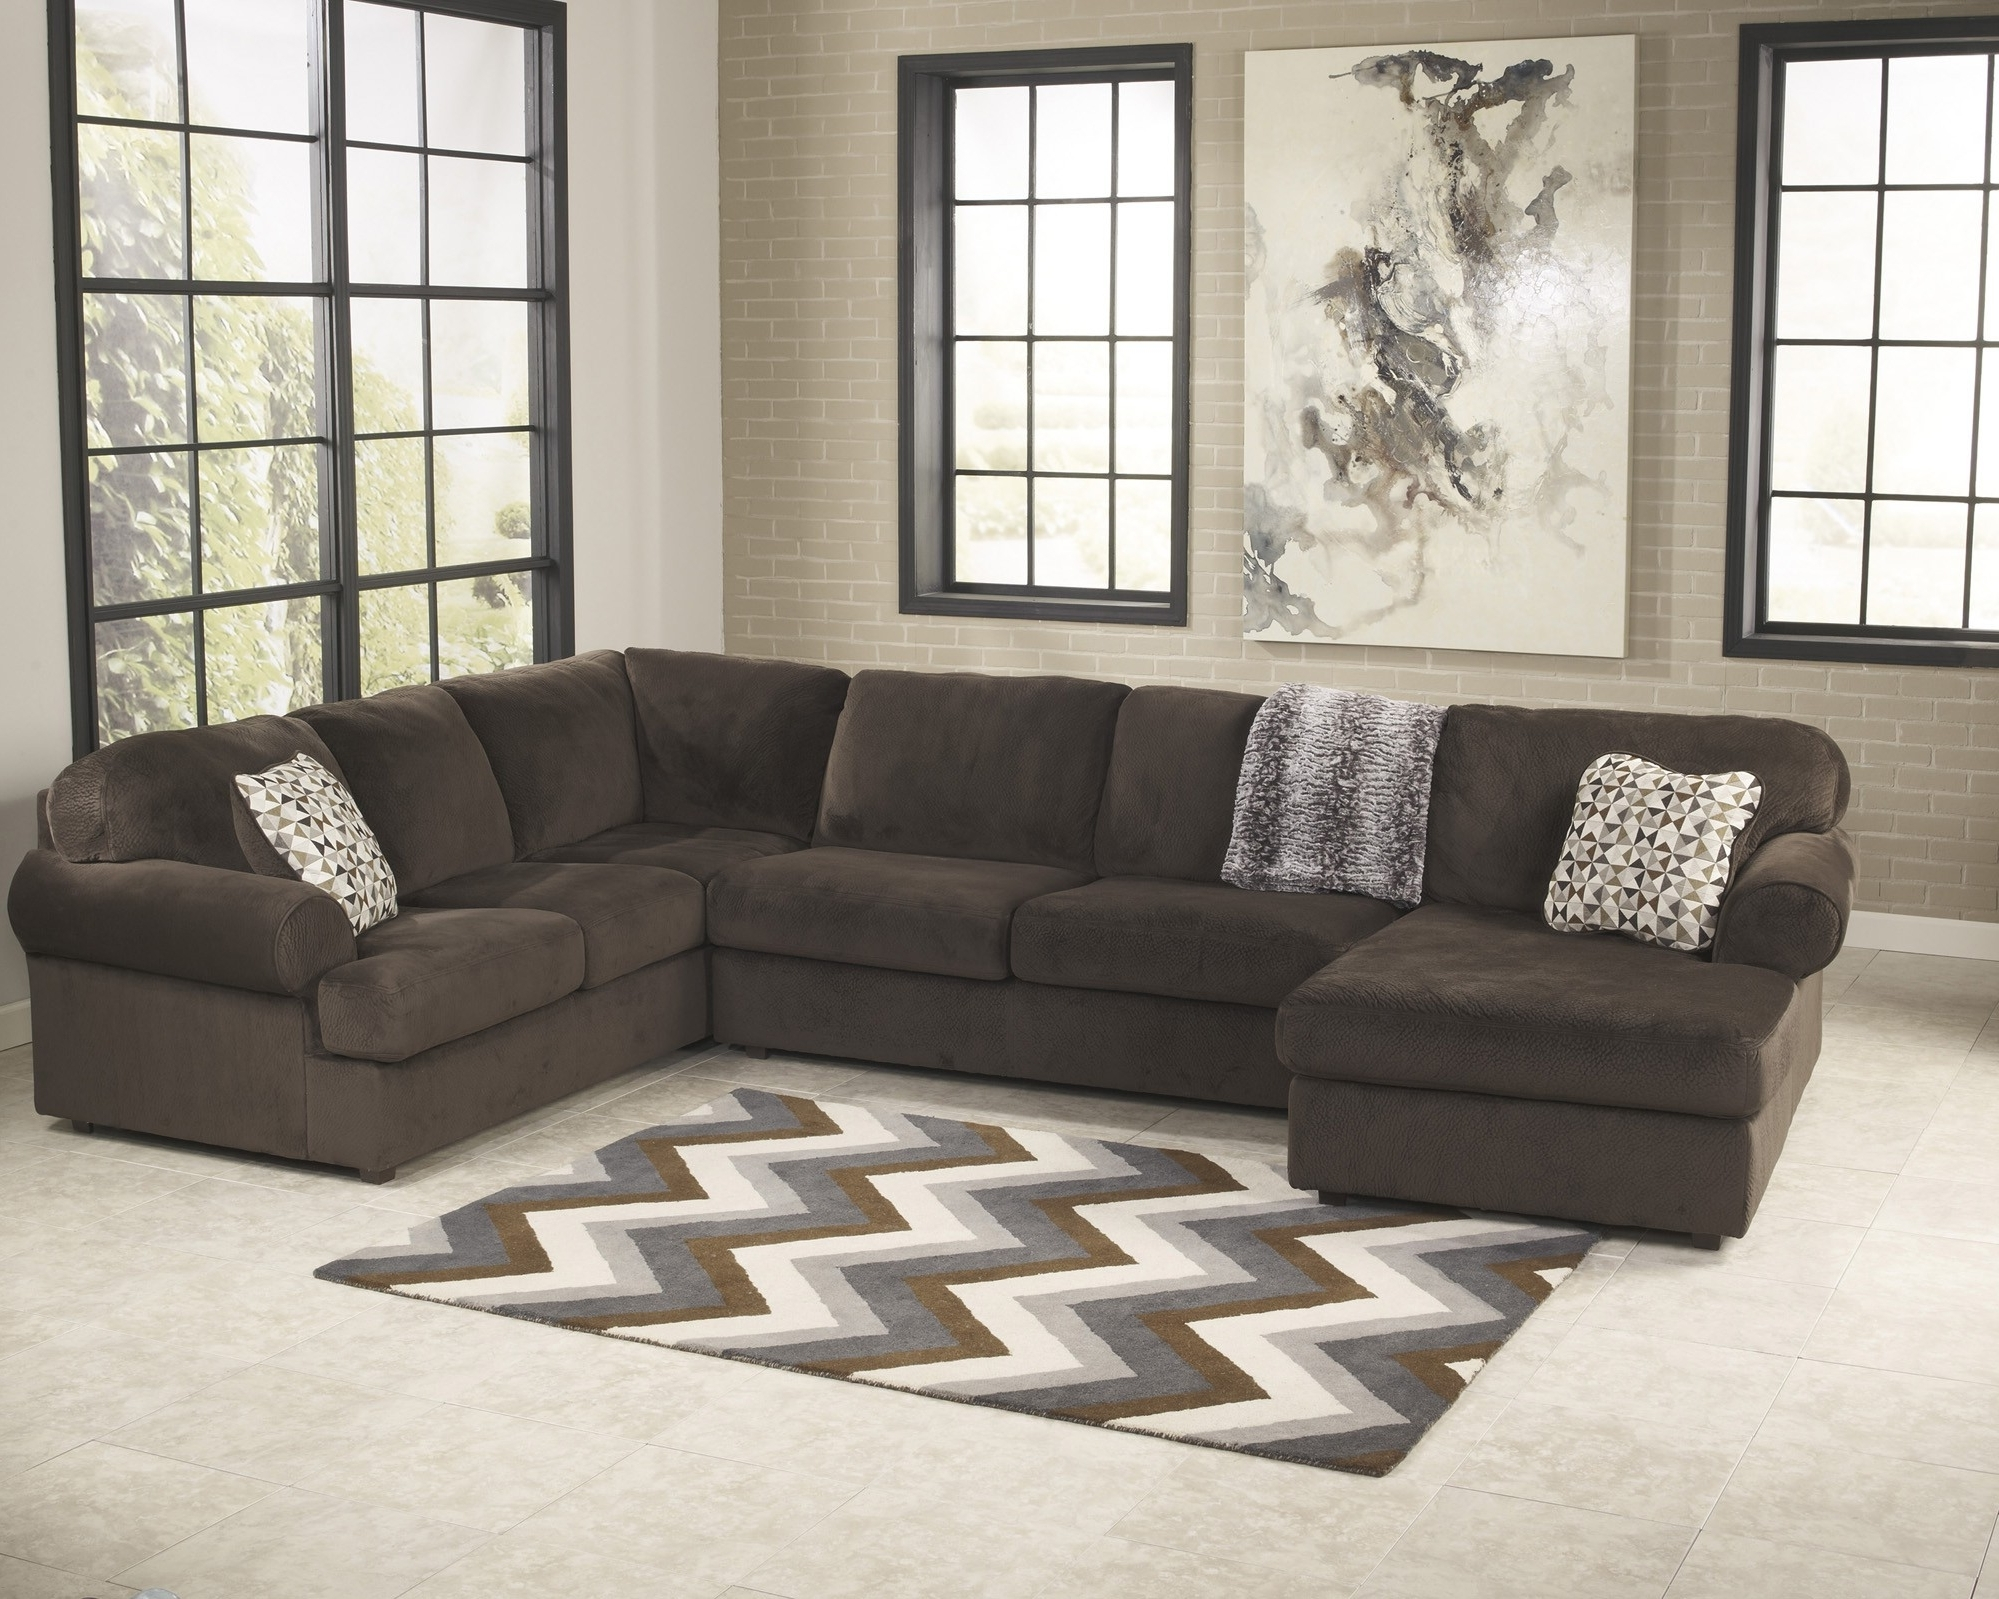 Most Popular Jessa Place Chocolate 3 Piece Sectional Sofa For $ (View 3 of 15)